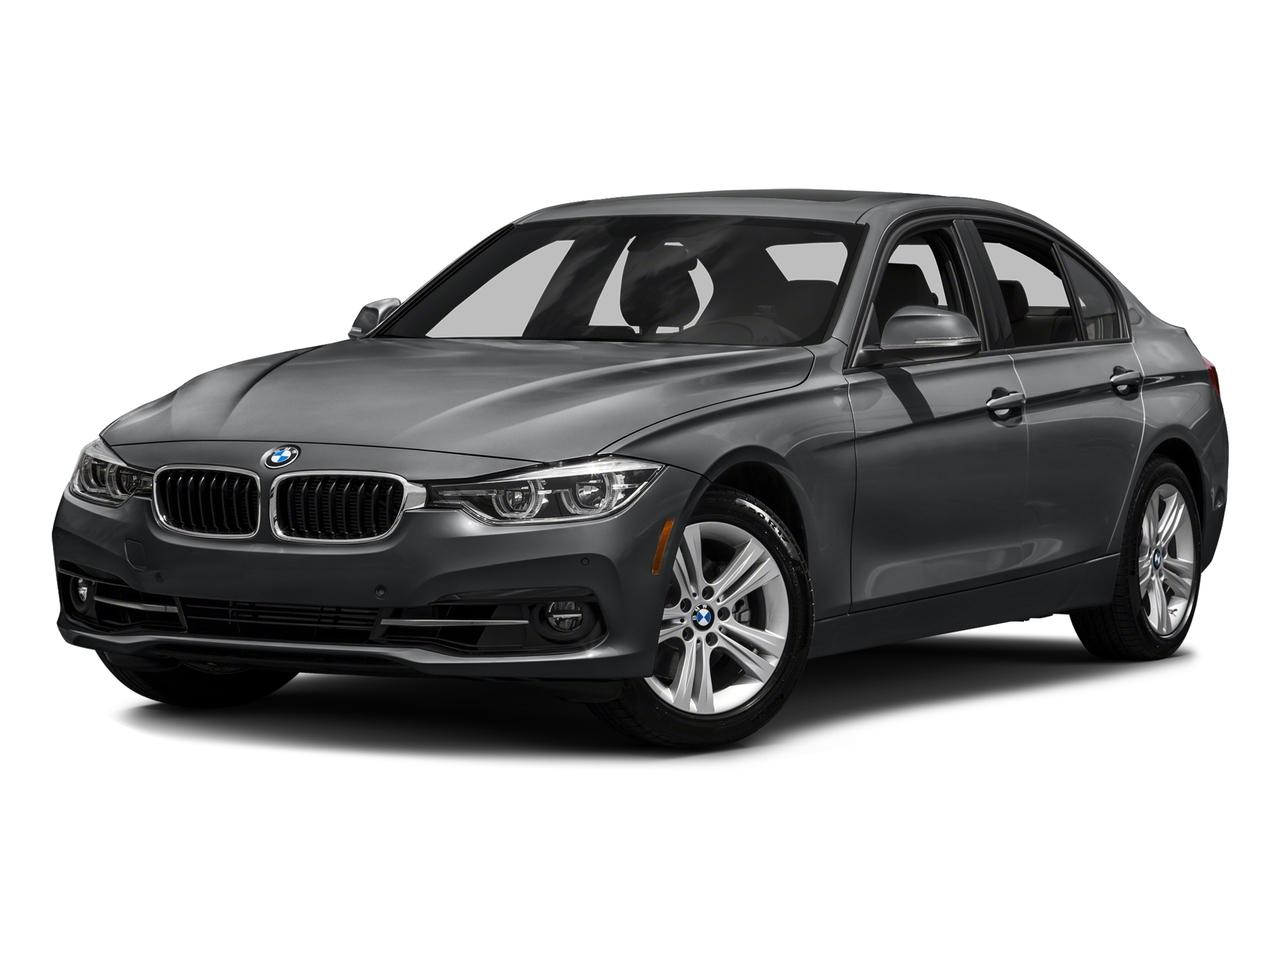 2018 BMW 330i xDrive Vehicle Photo in Tulsa, OK 74133